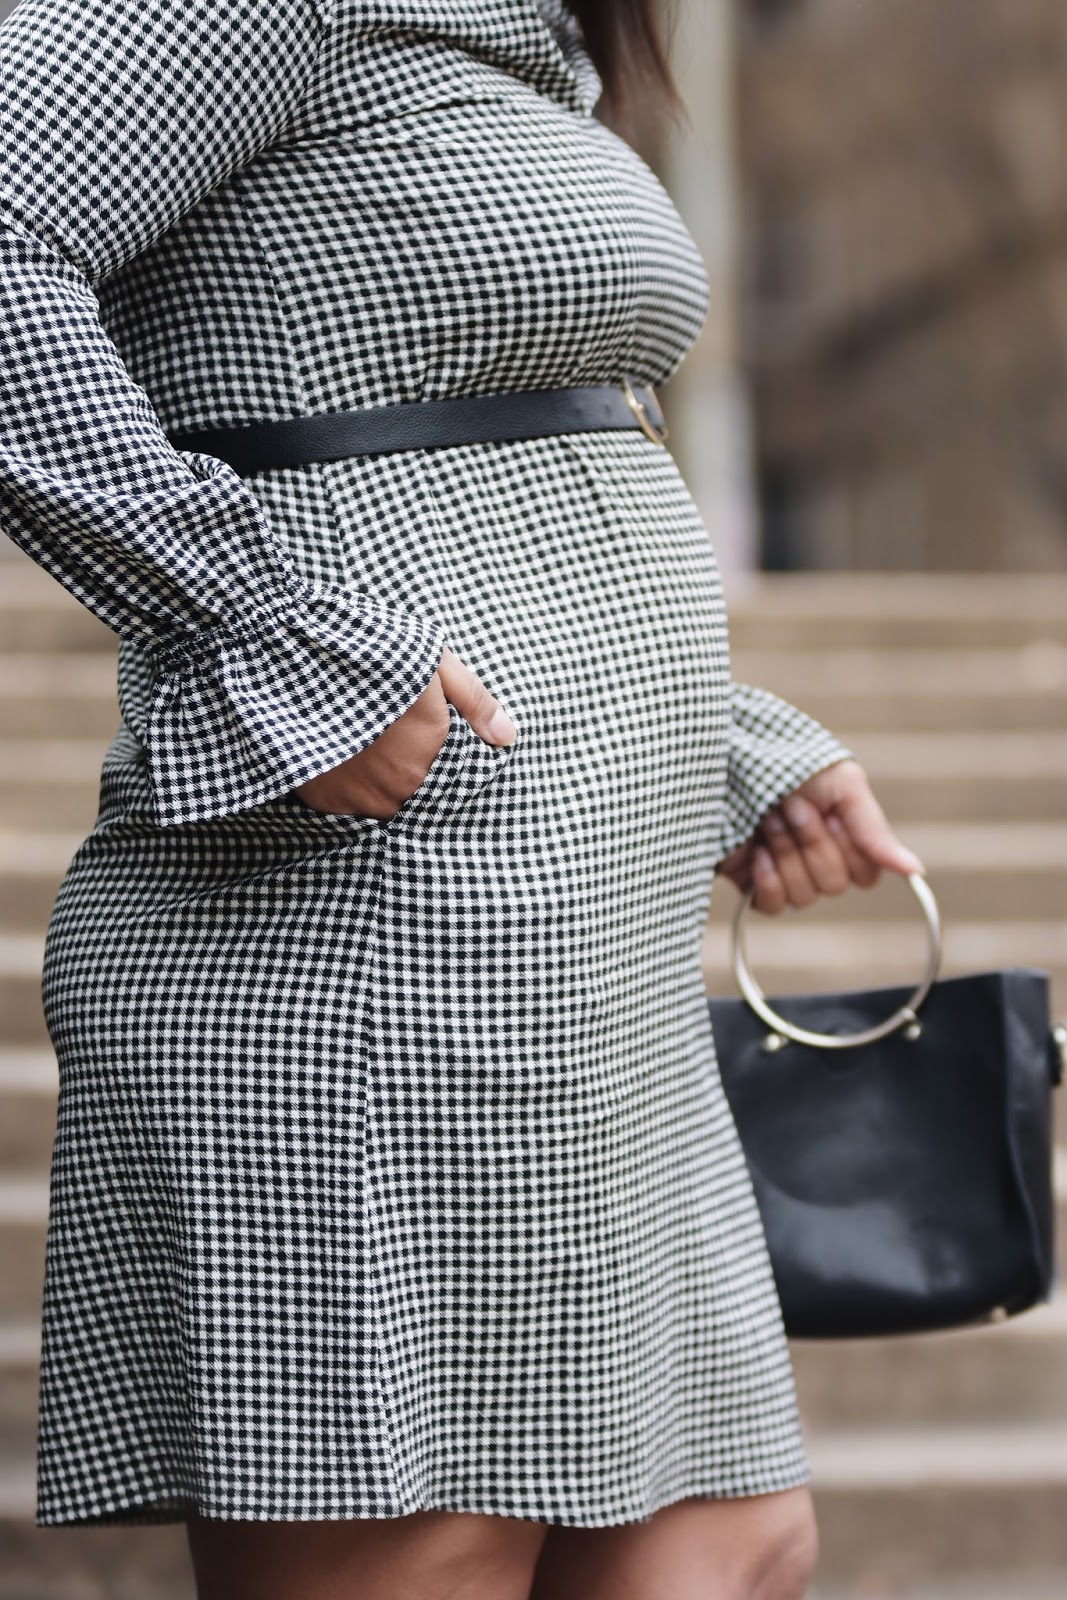 maternity fashion, spring looks, h&m dresses, pregnancy style, maternity, mom bloggers